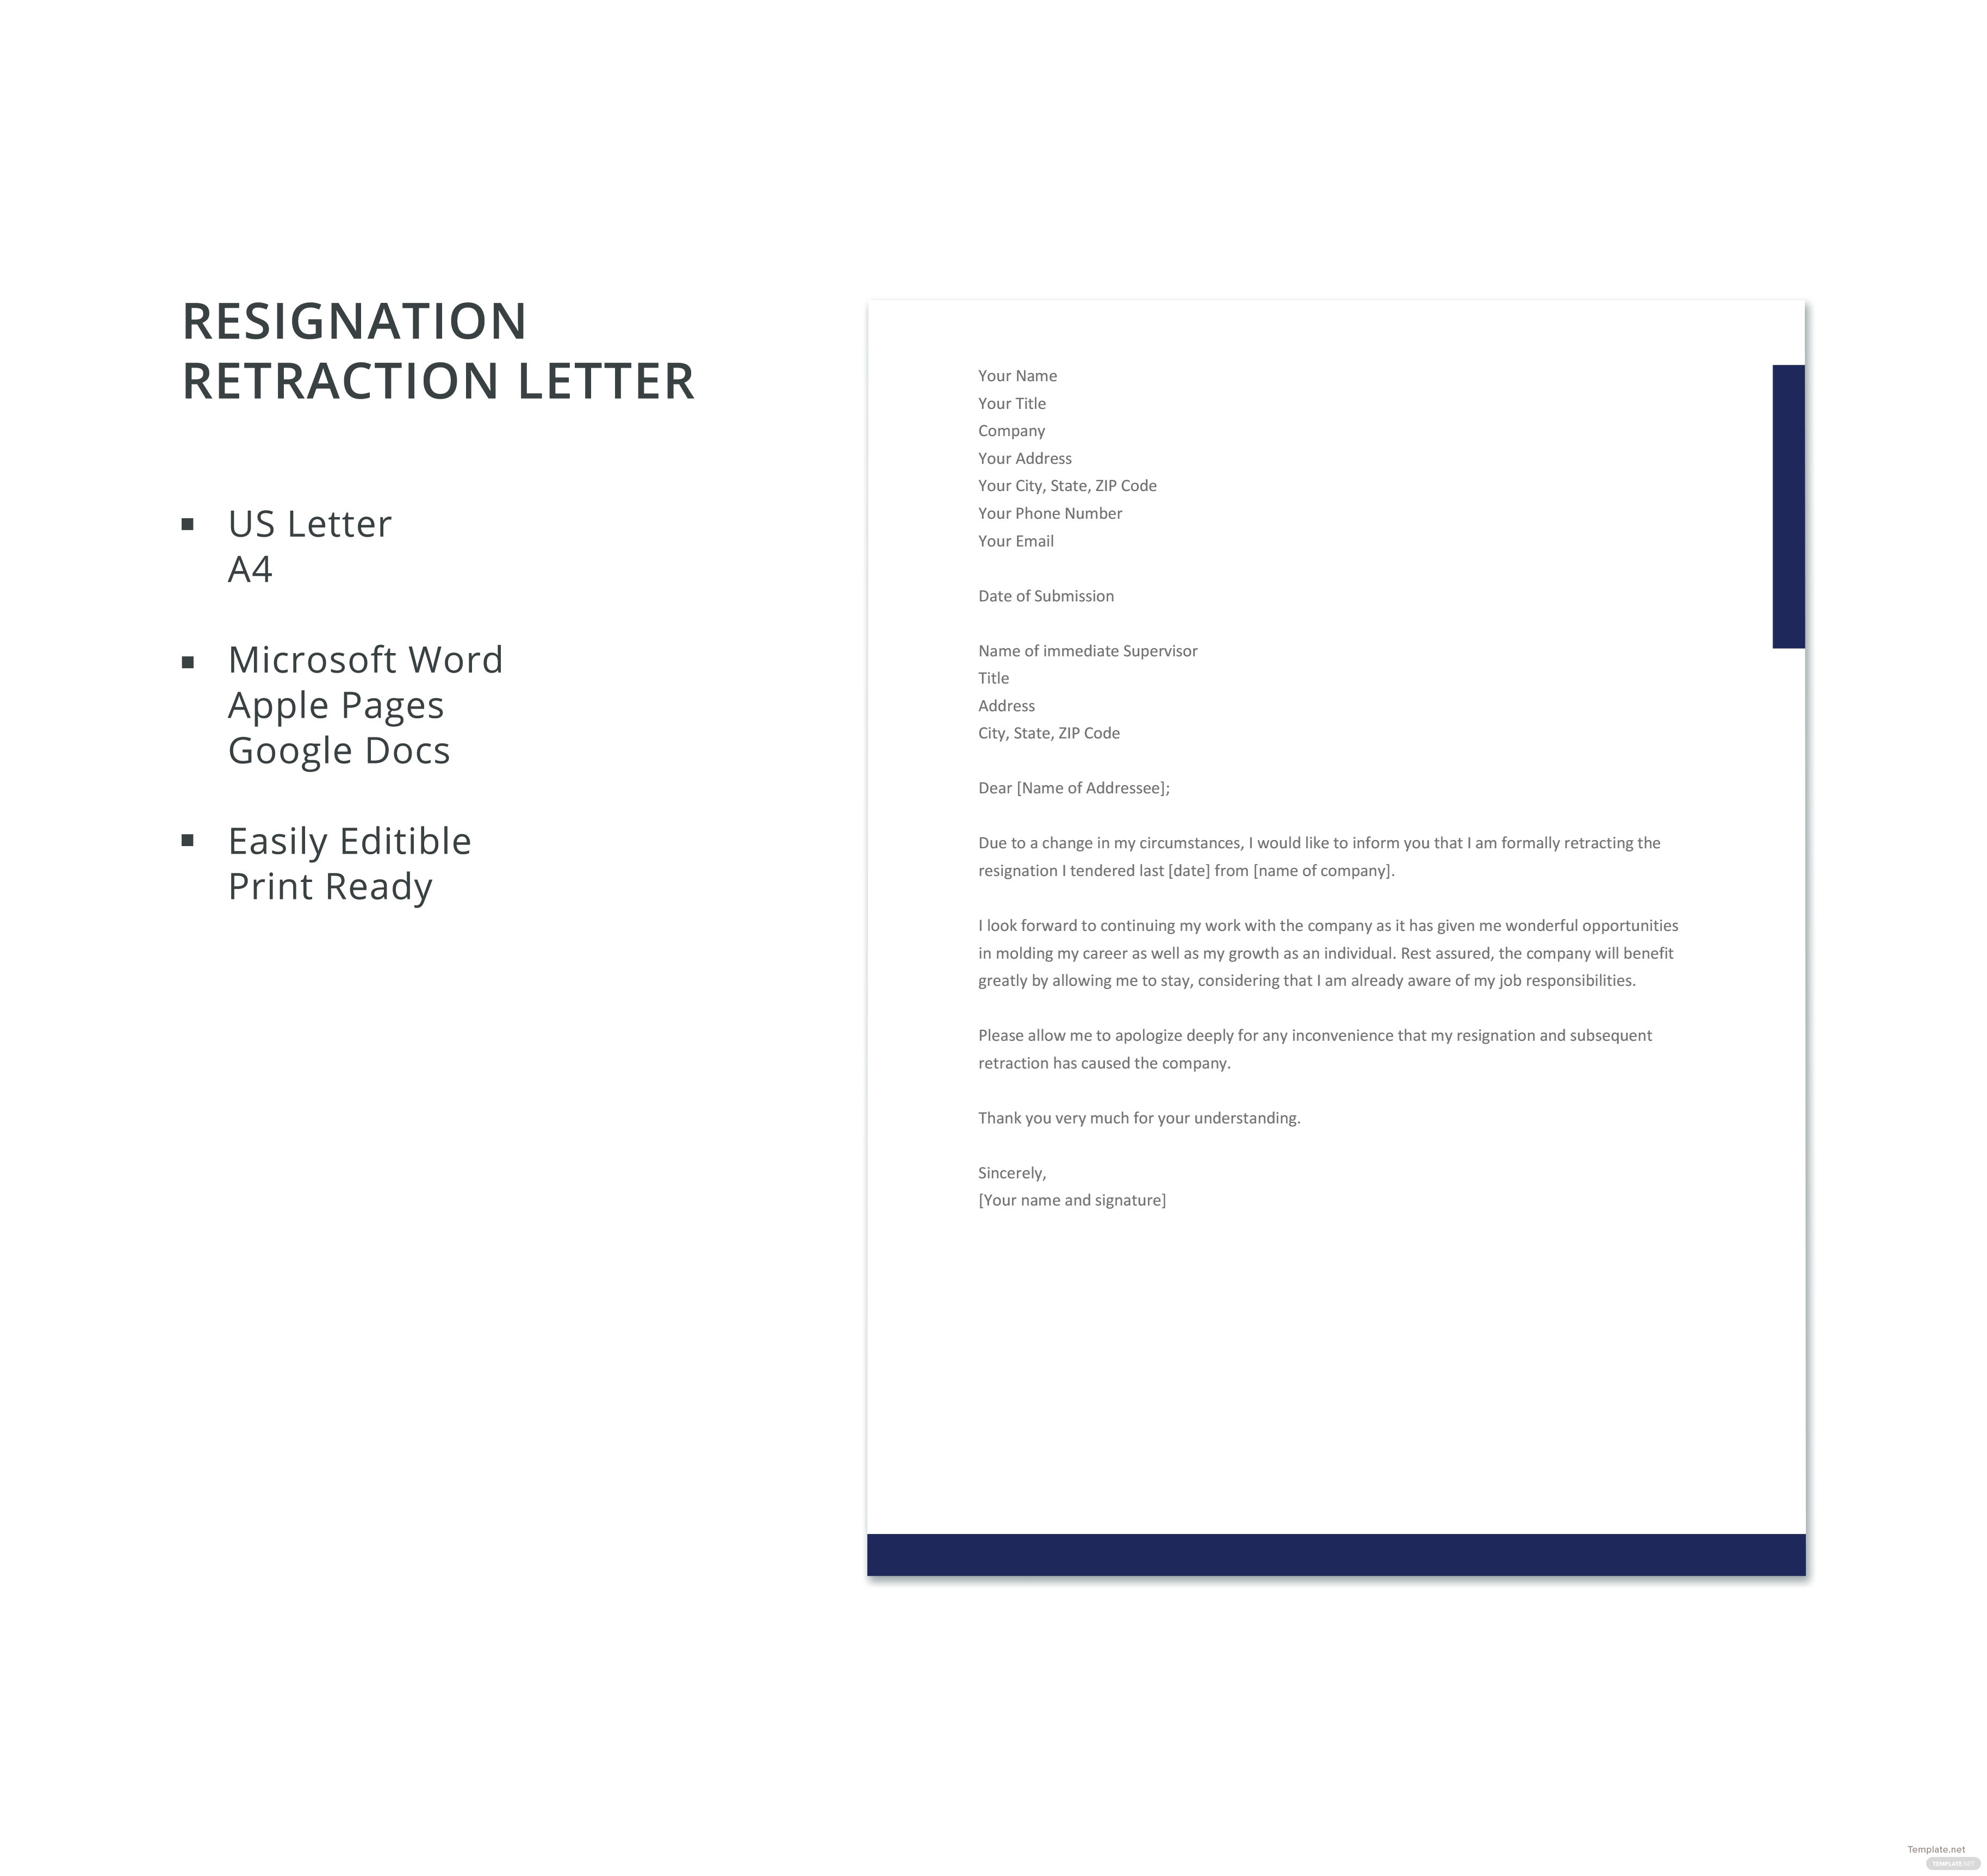 Free resignation retraction letter template in microsoft word apple resignation retraction letter template spiritdancerdesigns Gallery